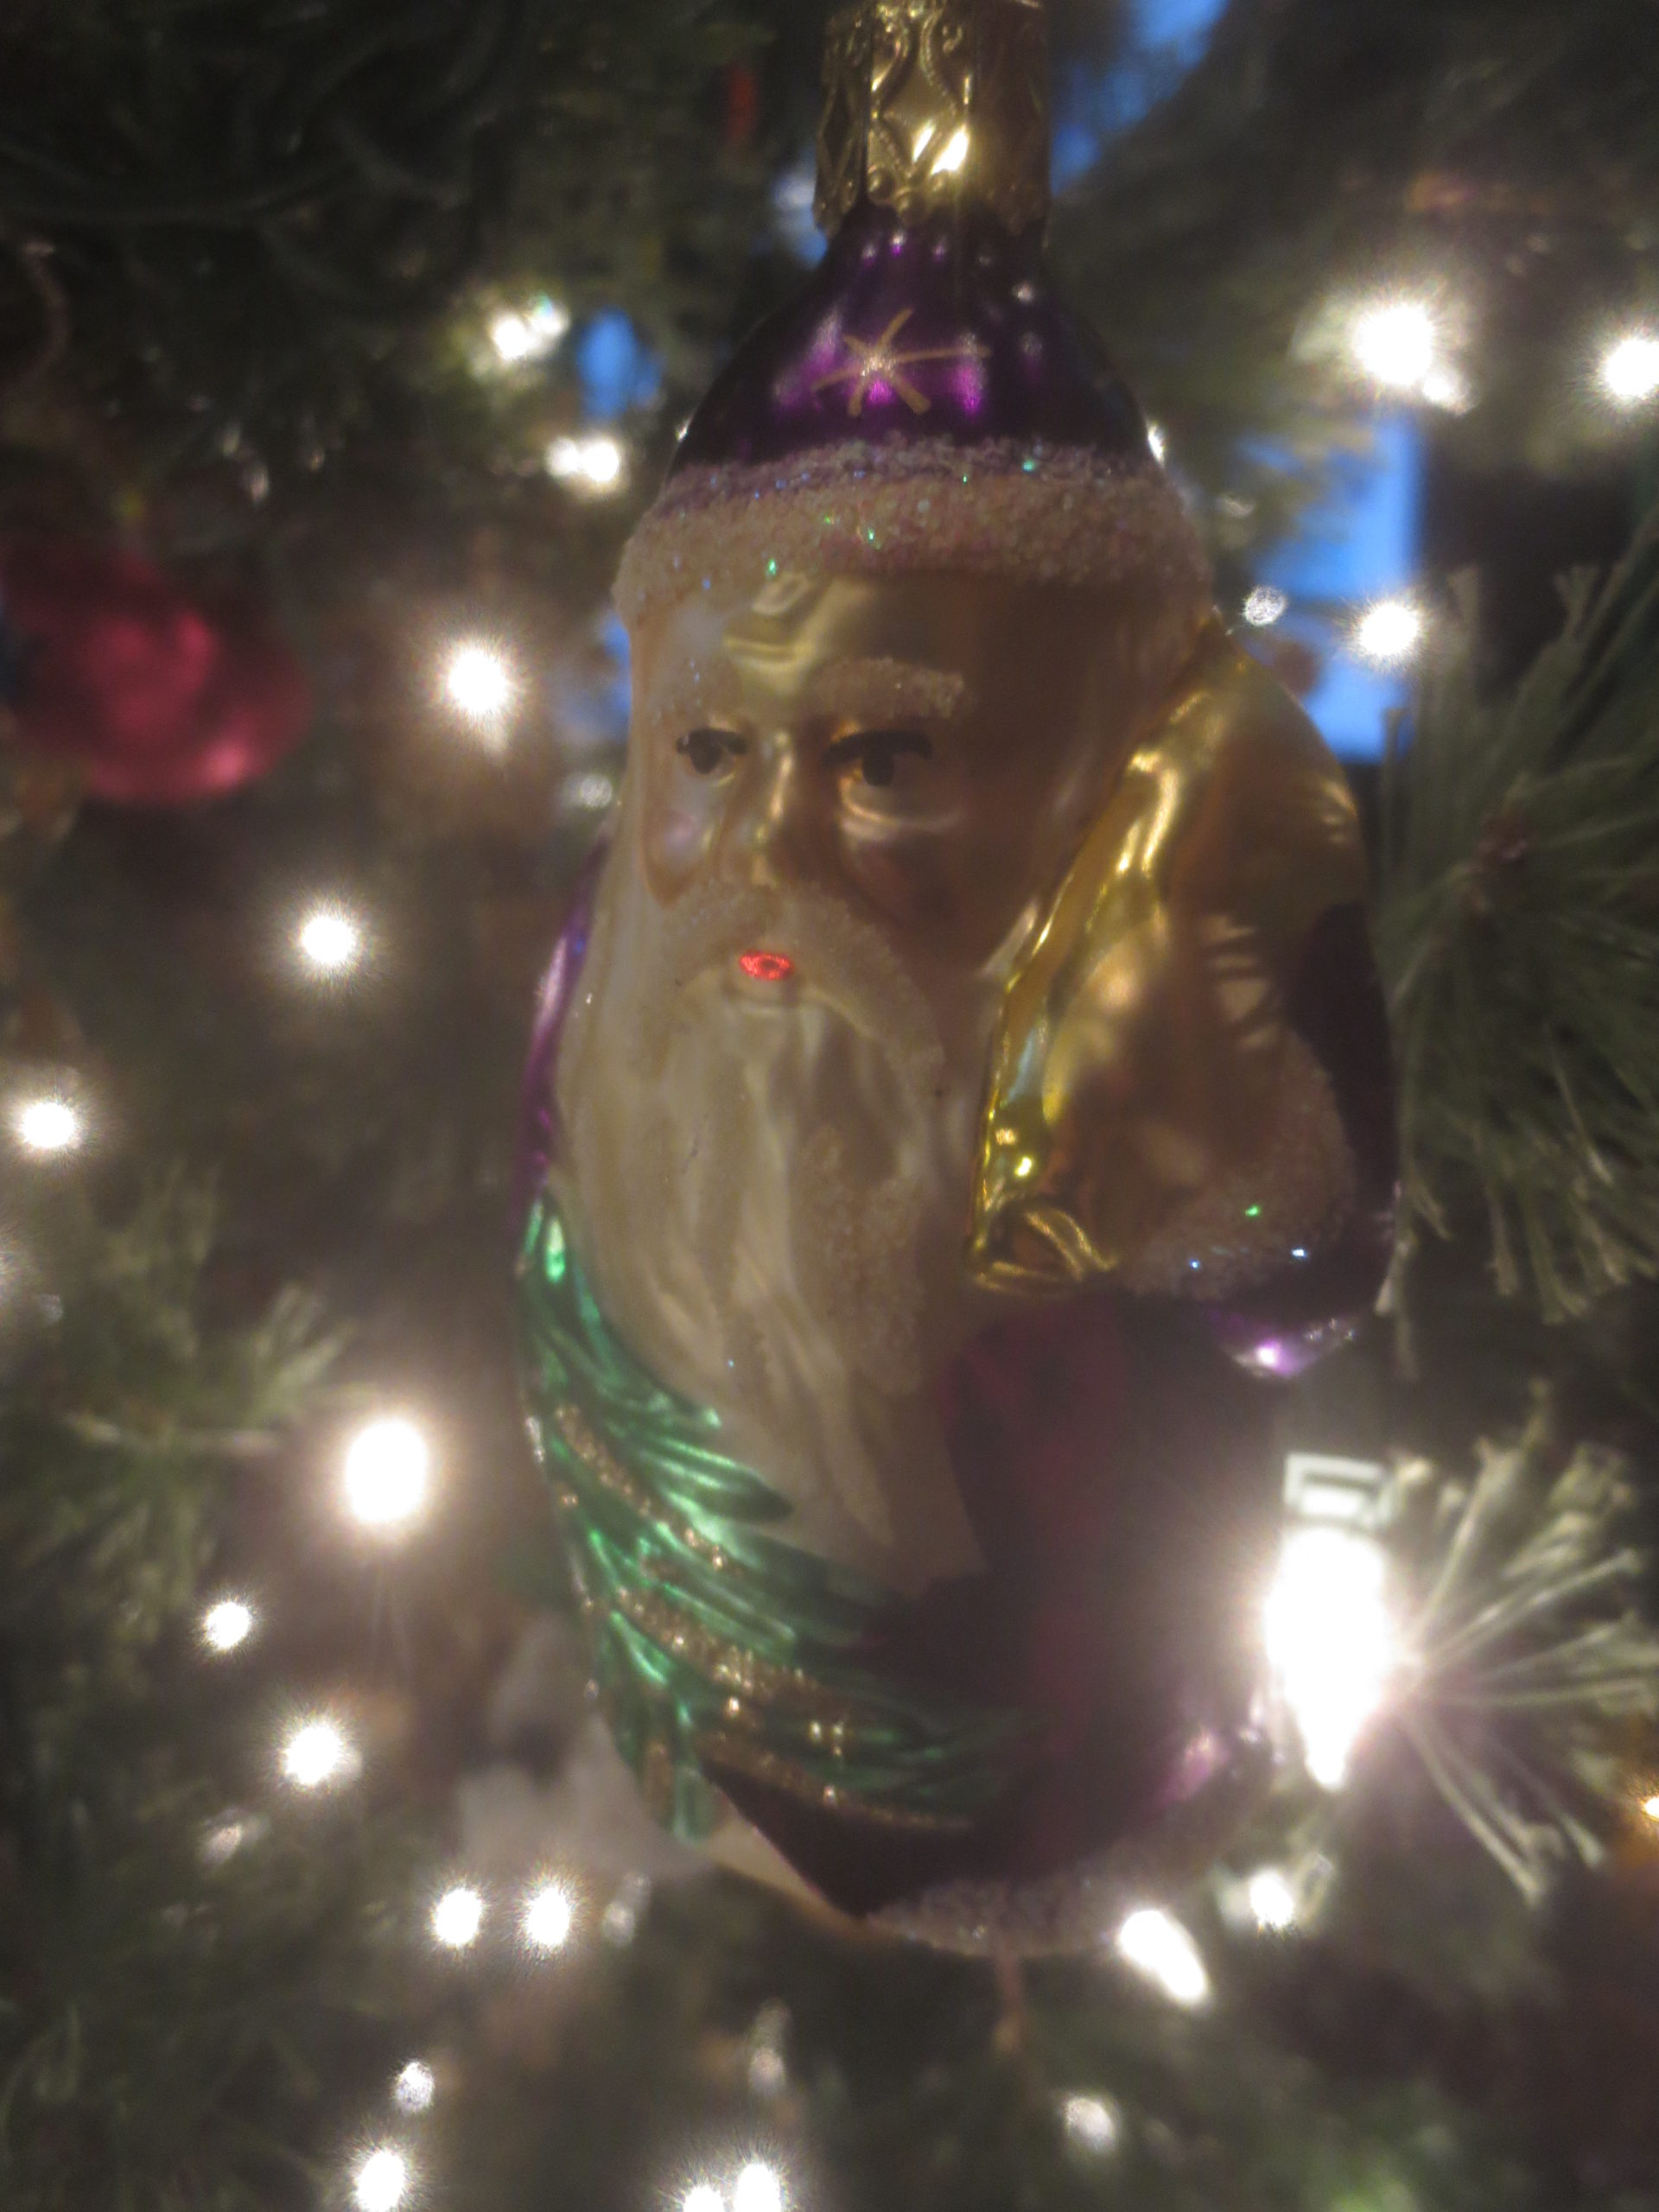 close up of a glass Santa ornament with a purple suit